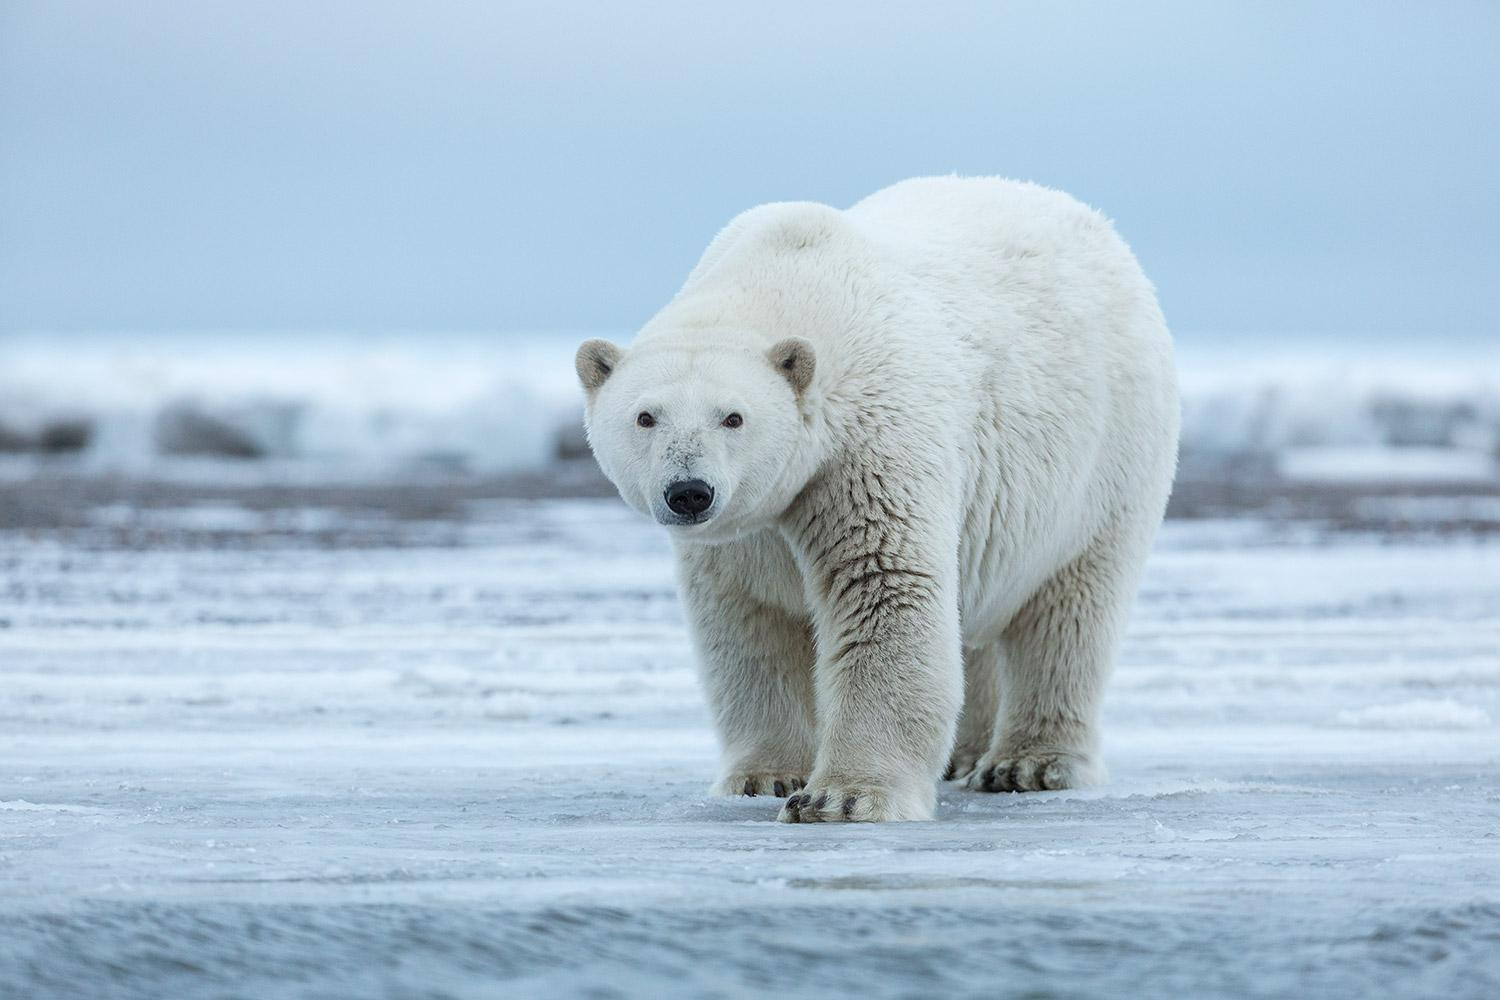 Polar-bear-standing-on-shore-ice,-Arctic-National-Wildlife-Refuge,-Alaska,-USA